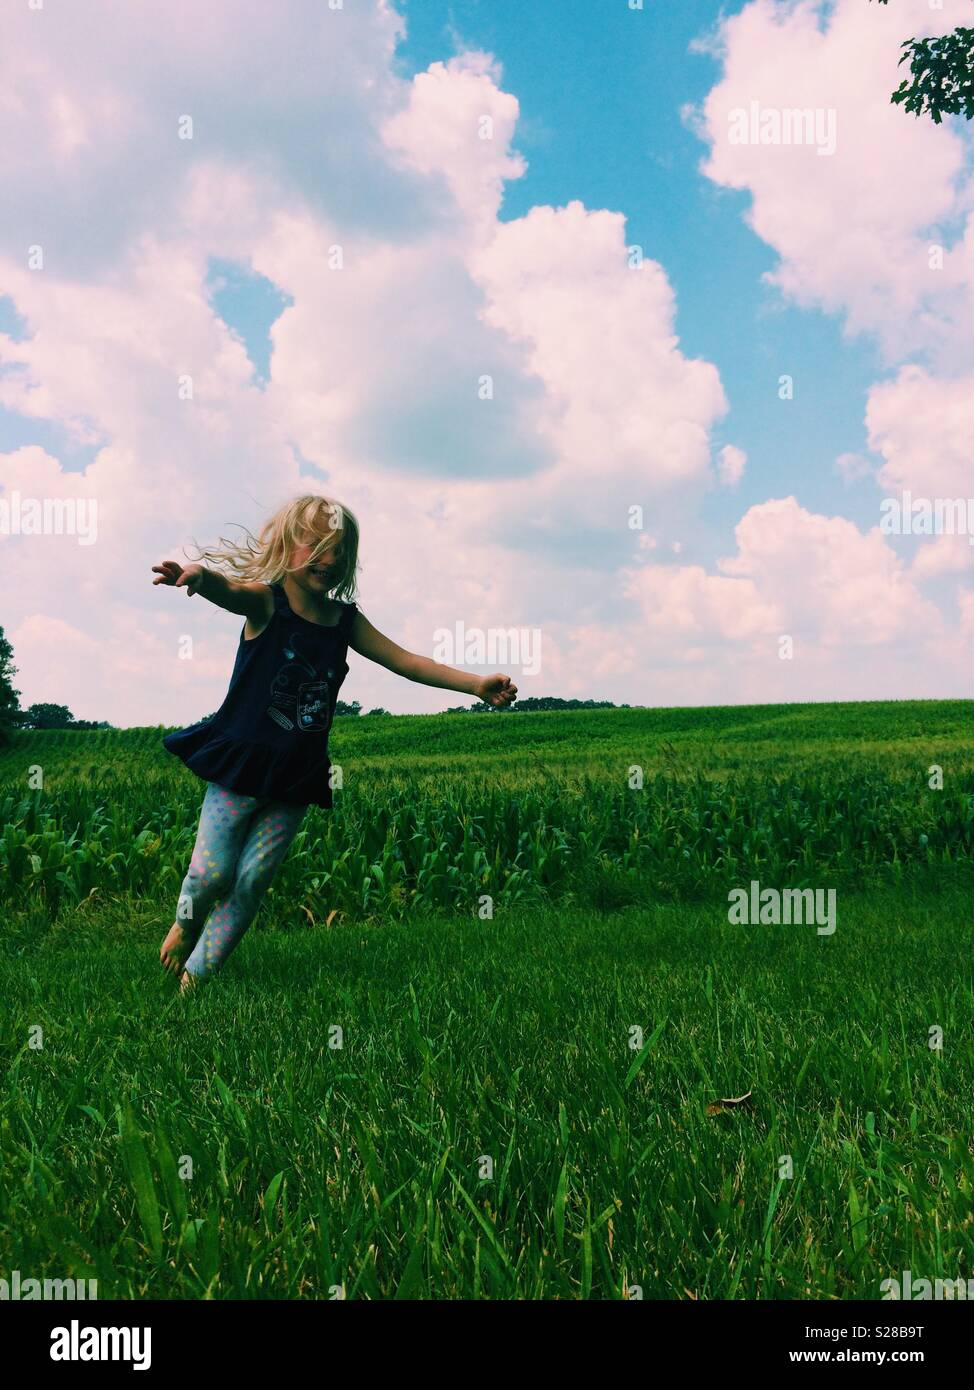 Young girl twirling in green field with blue sky above - Stock Image